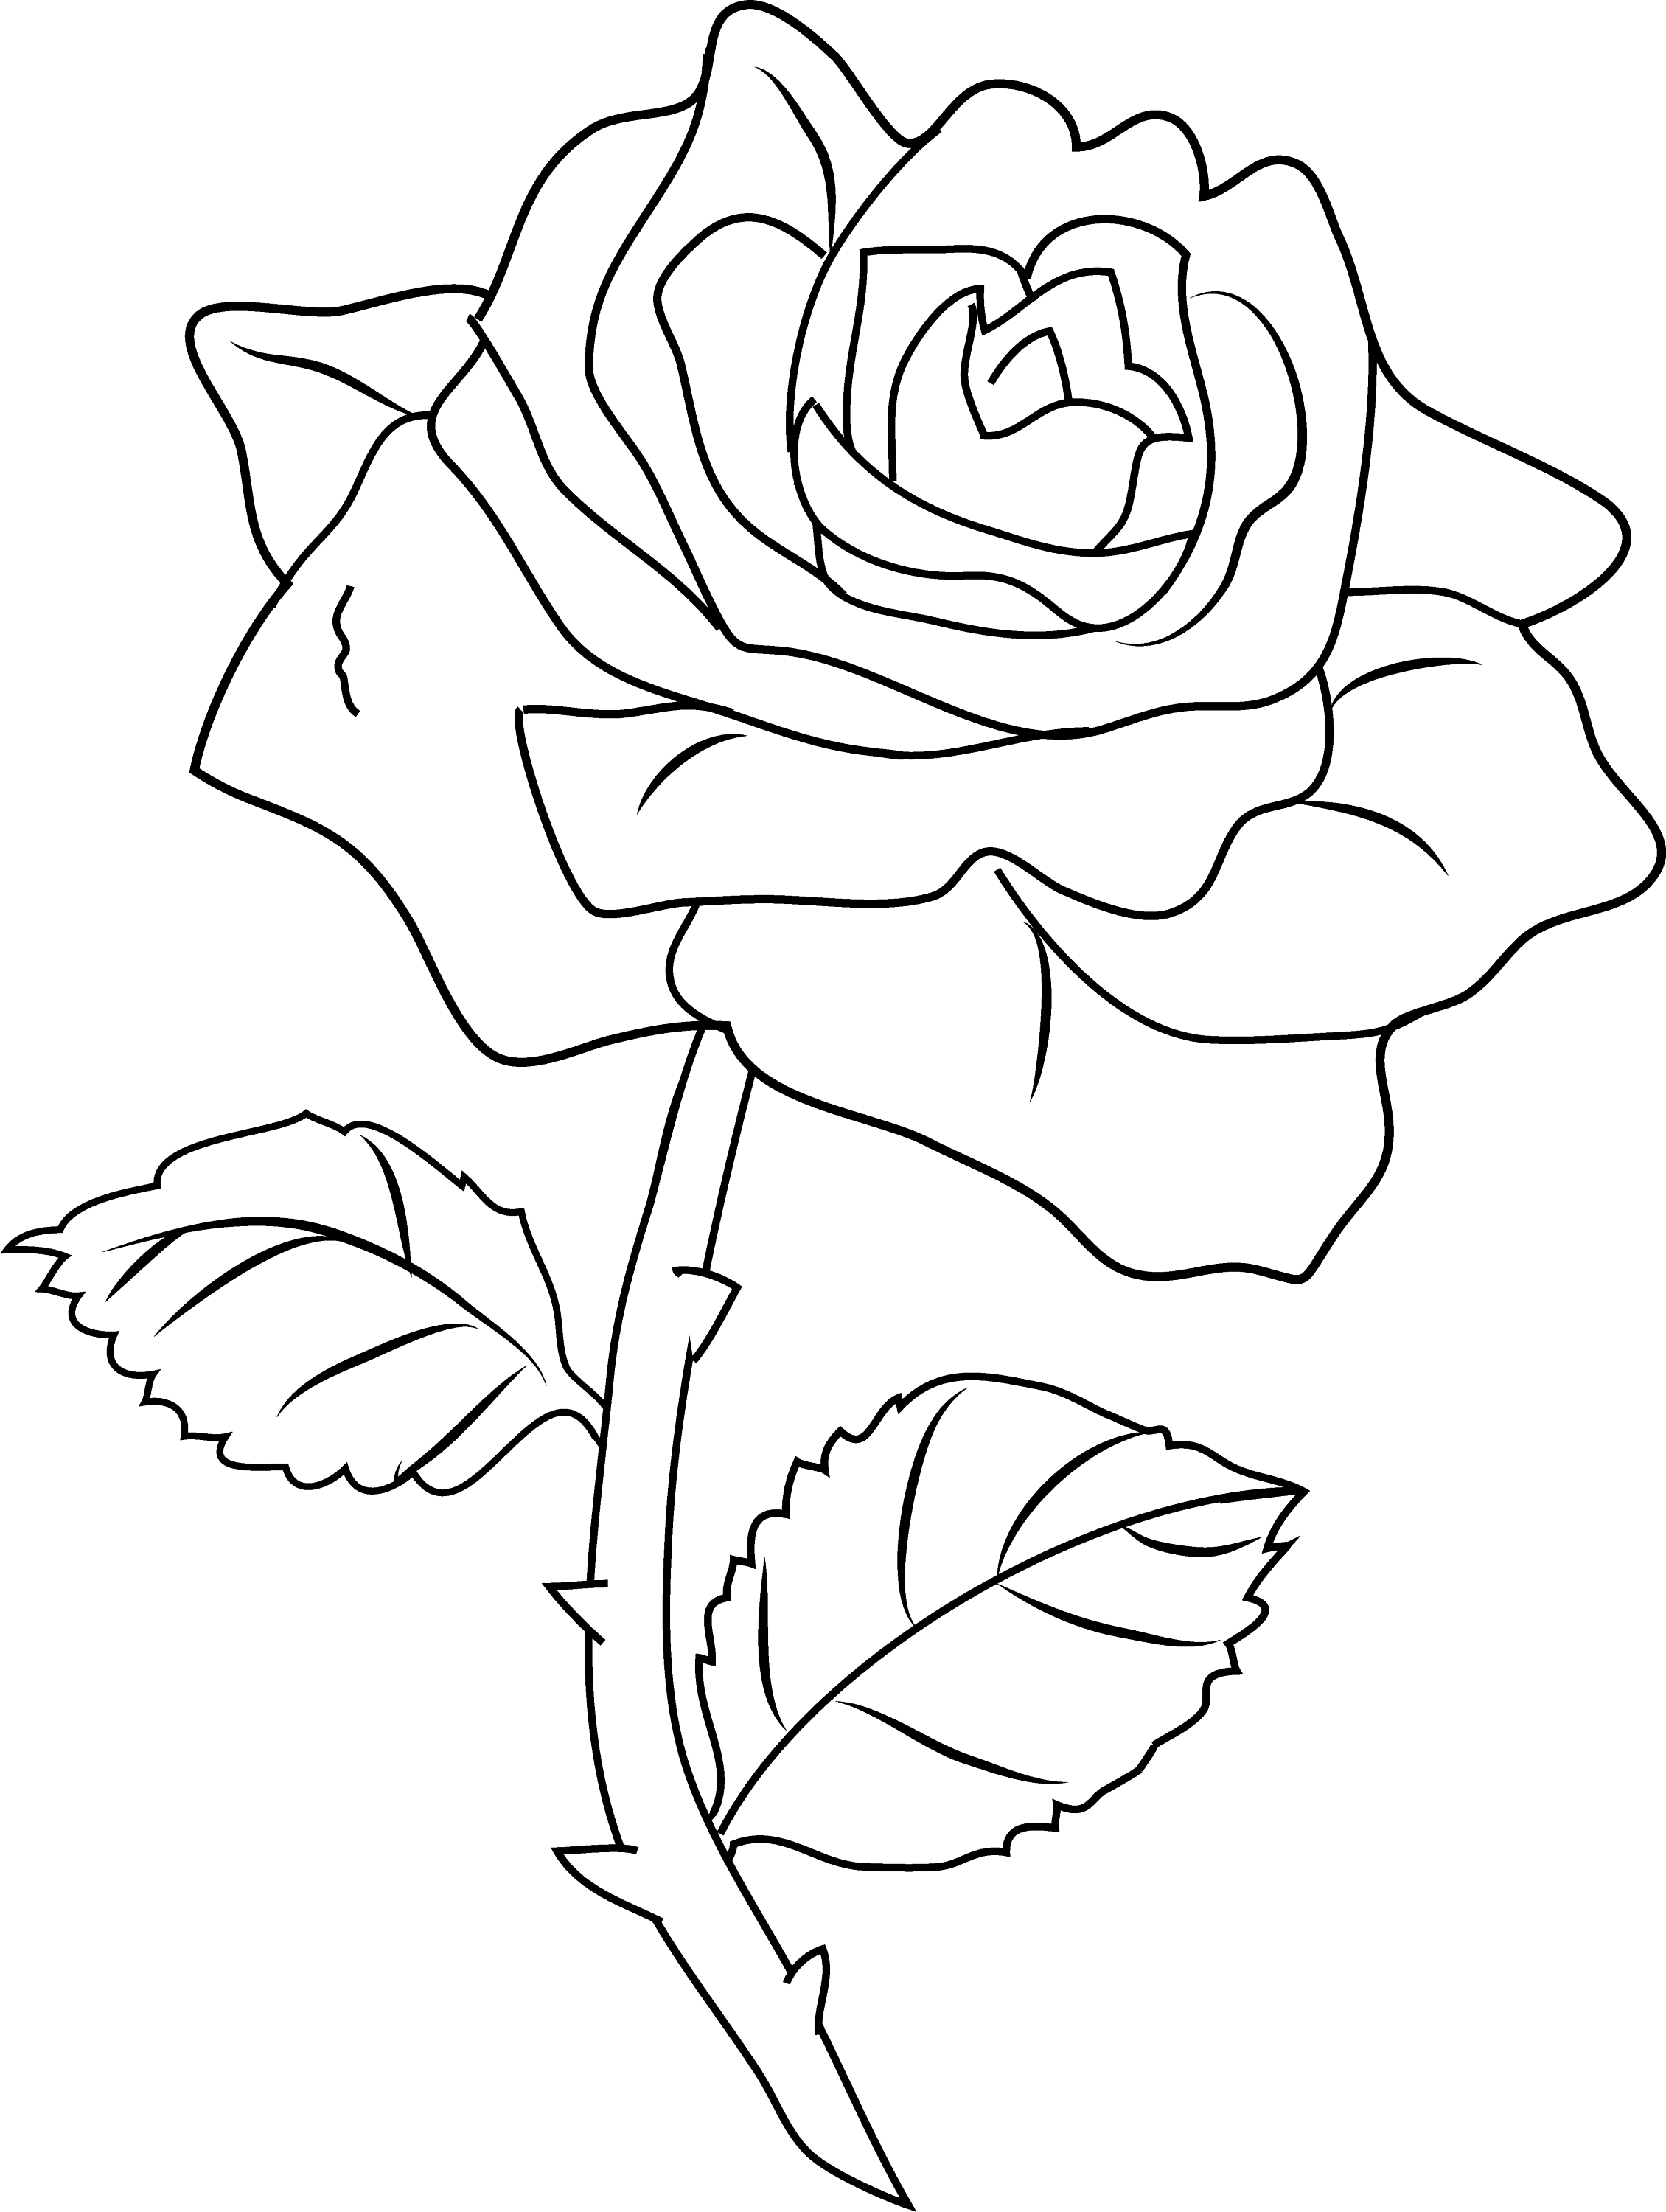 coloring flower clipart black and white pretty rose coloring page free clip art and clipart white coloring flower black